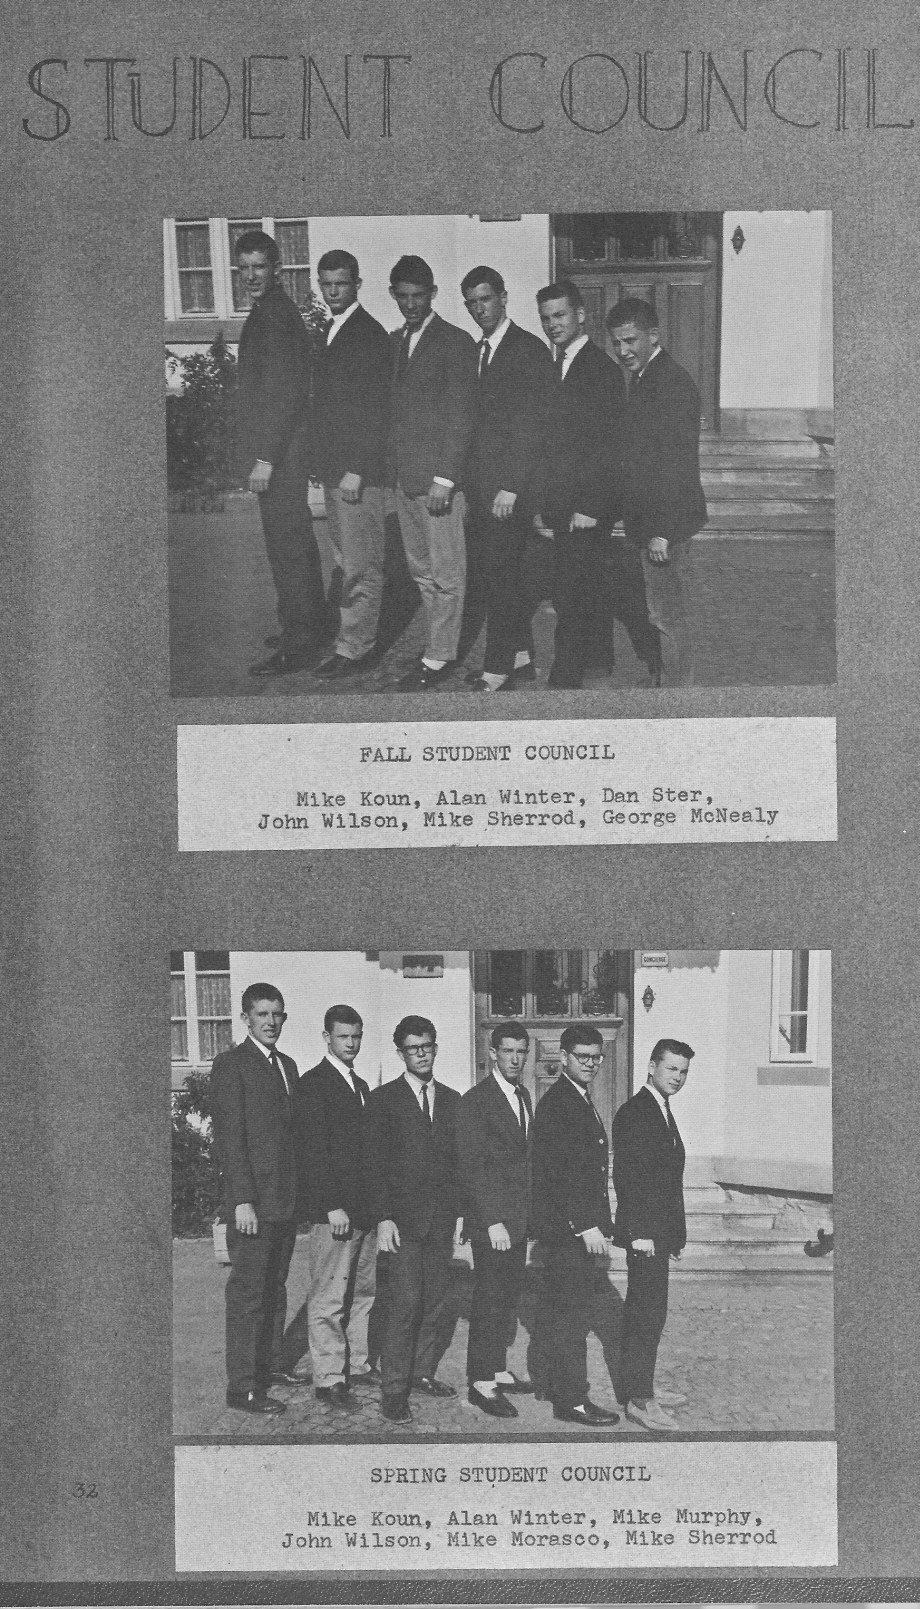 Student Council Photos 1 for  Villa Saint Jean International School  1964 Yearbook Le Chamois